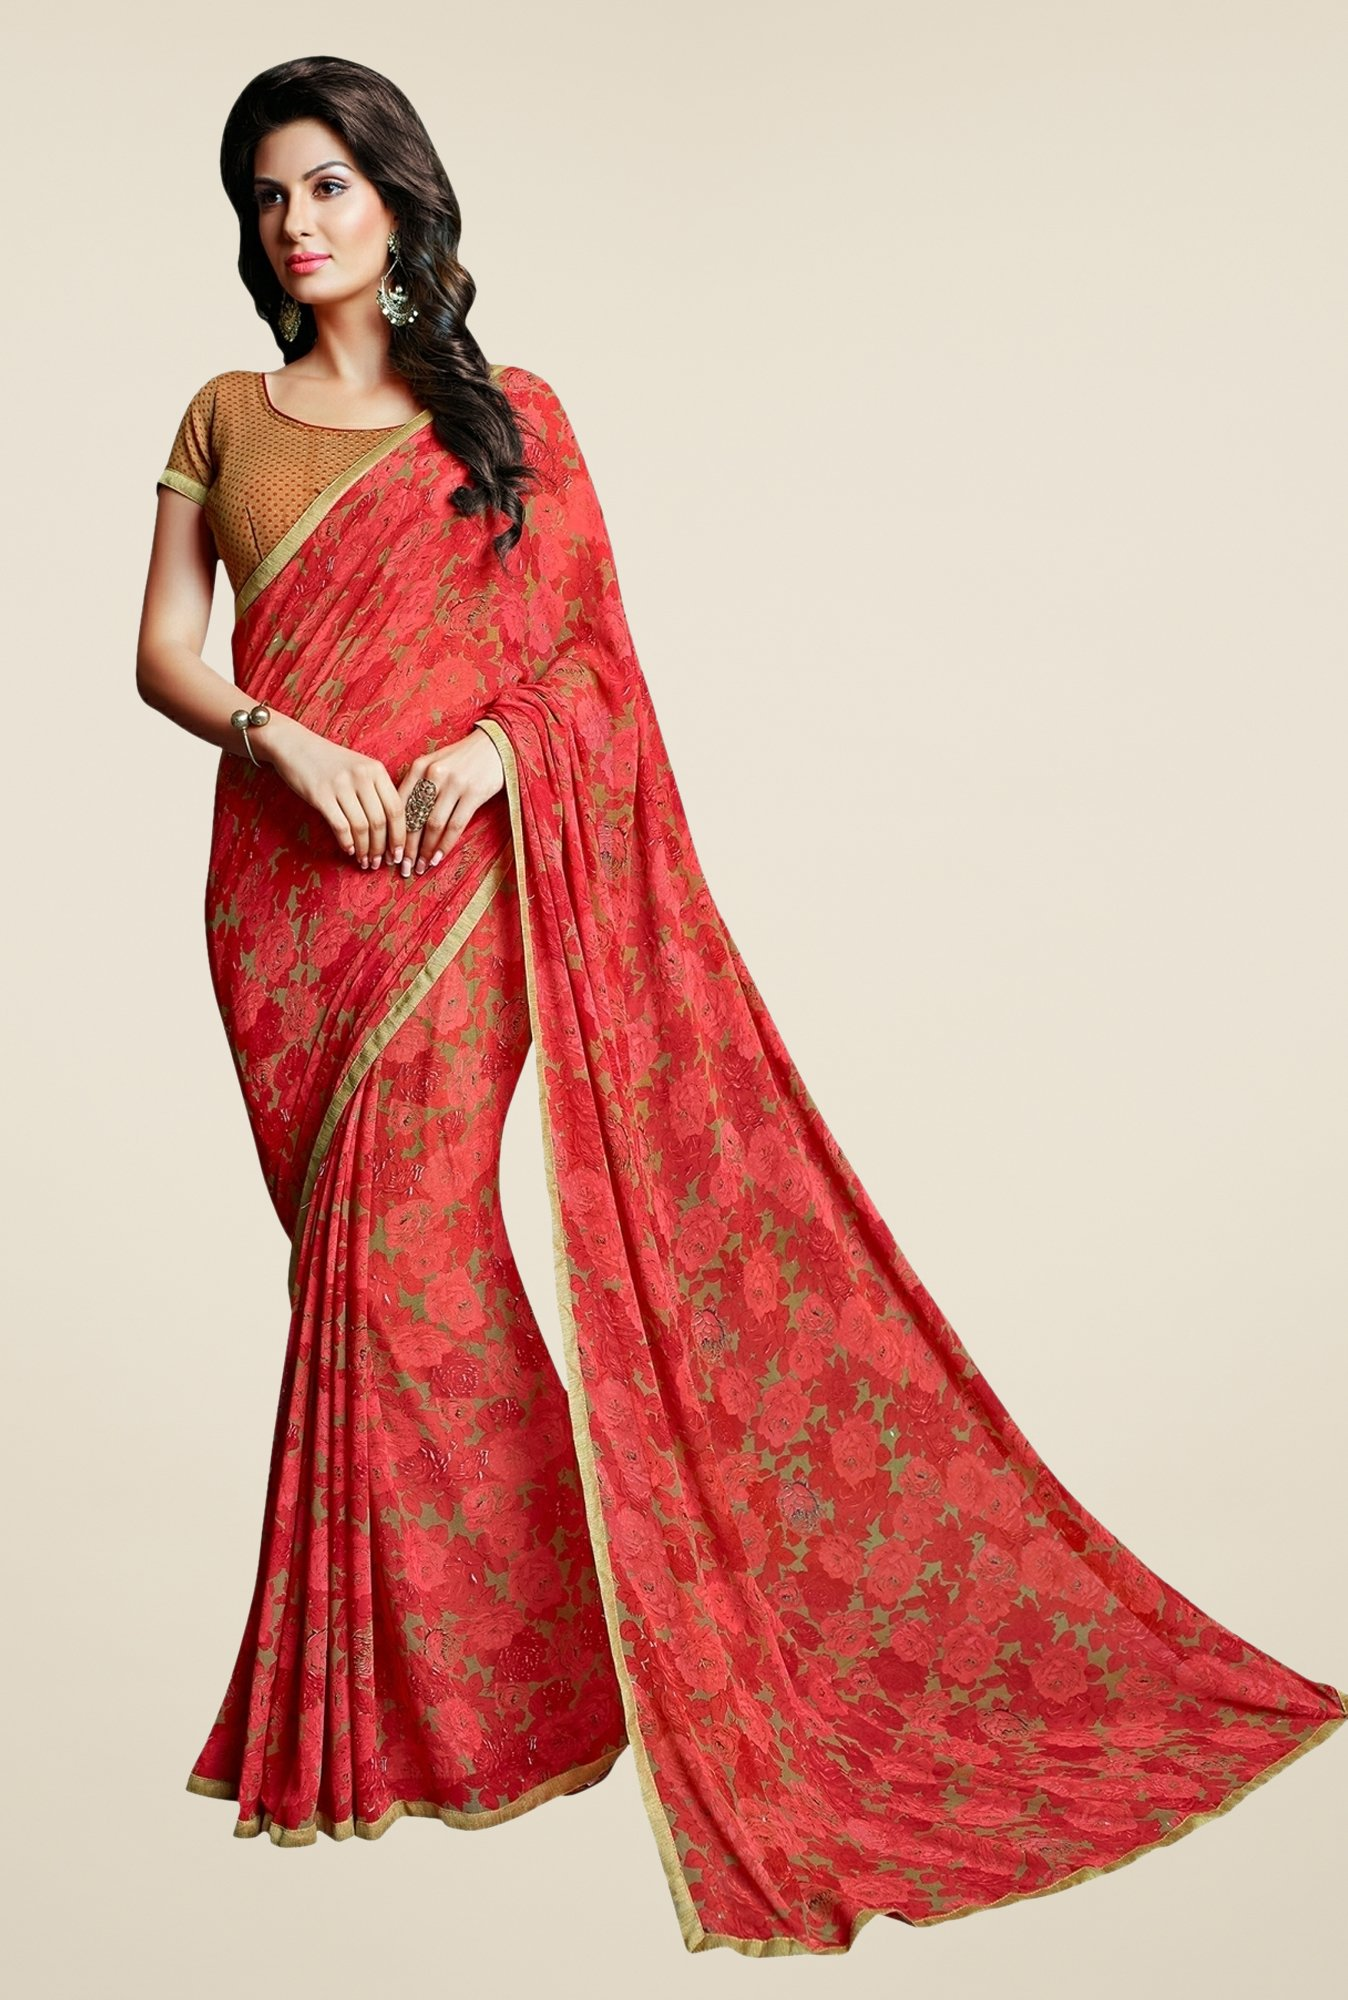 Triveni Striking Red Faux Georgette Saree